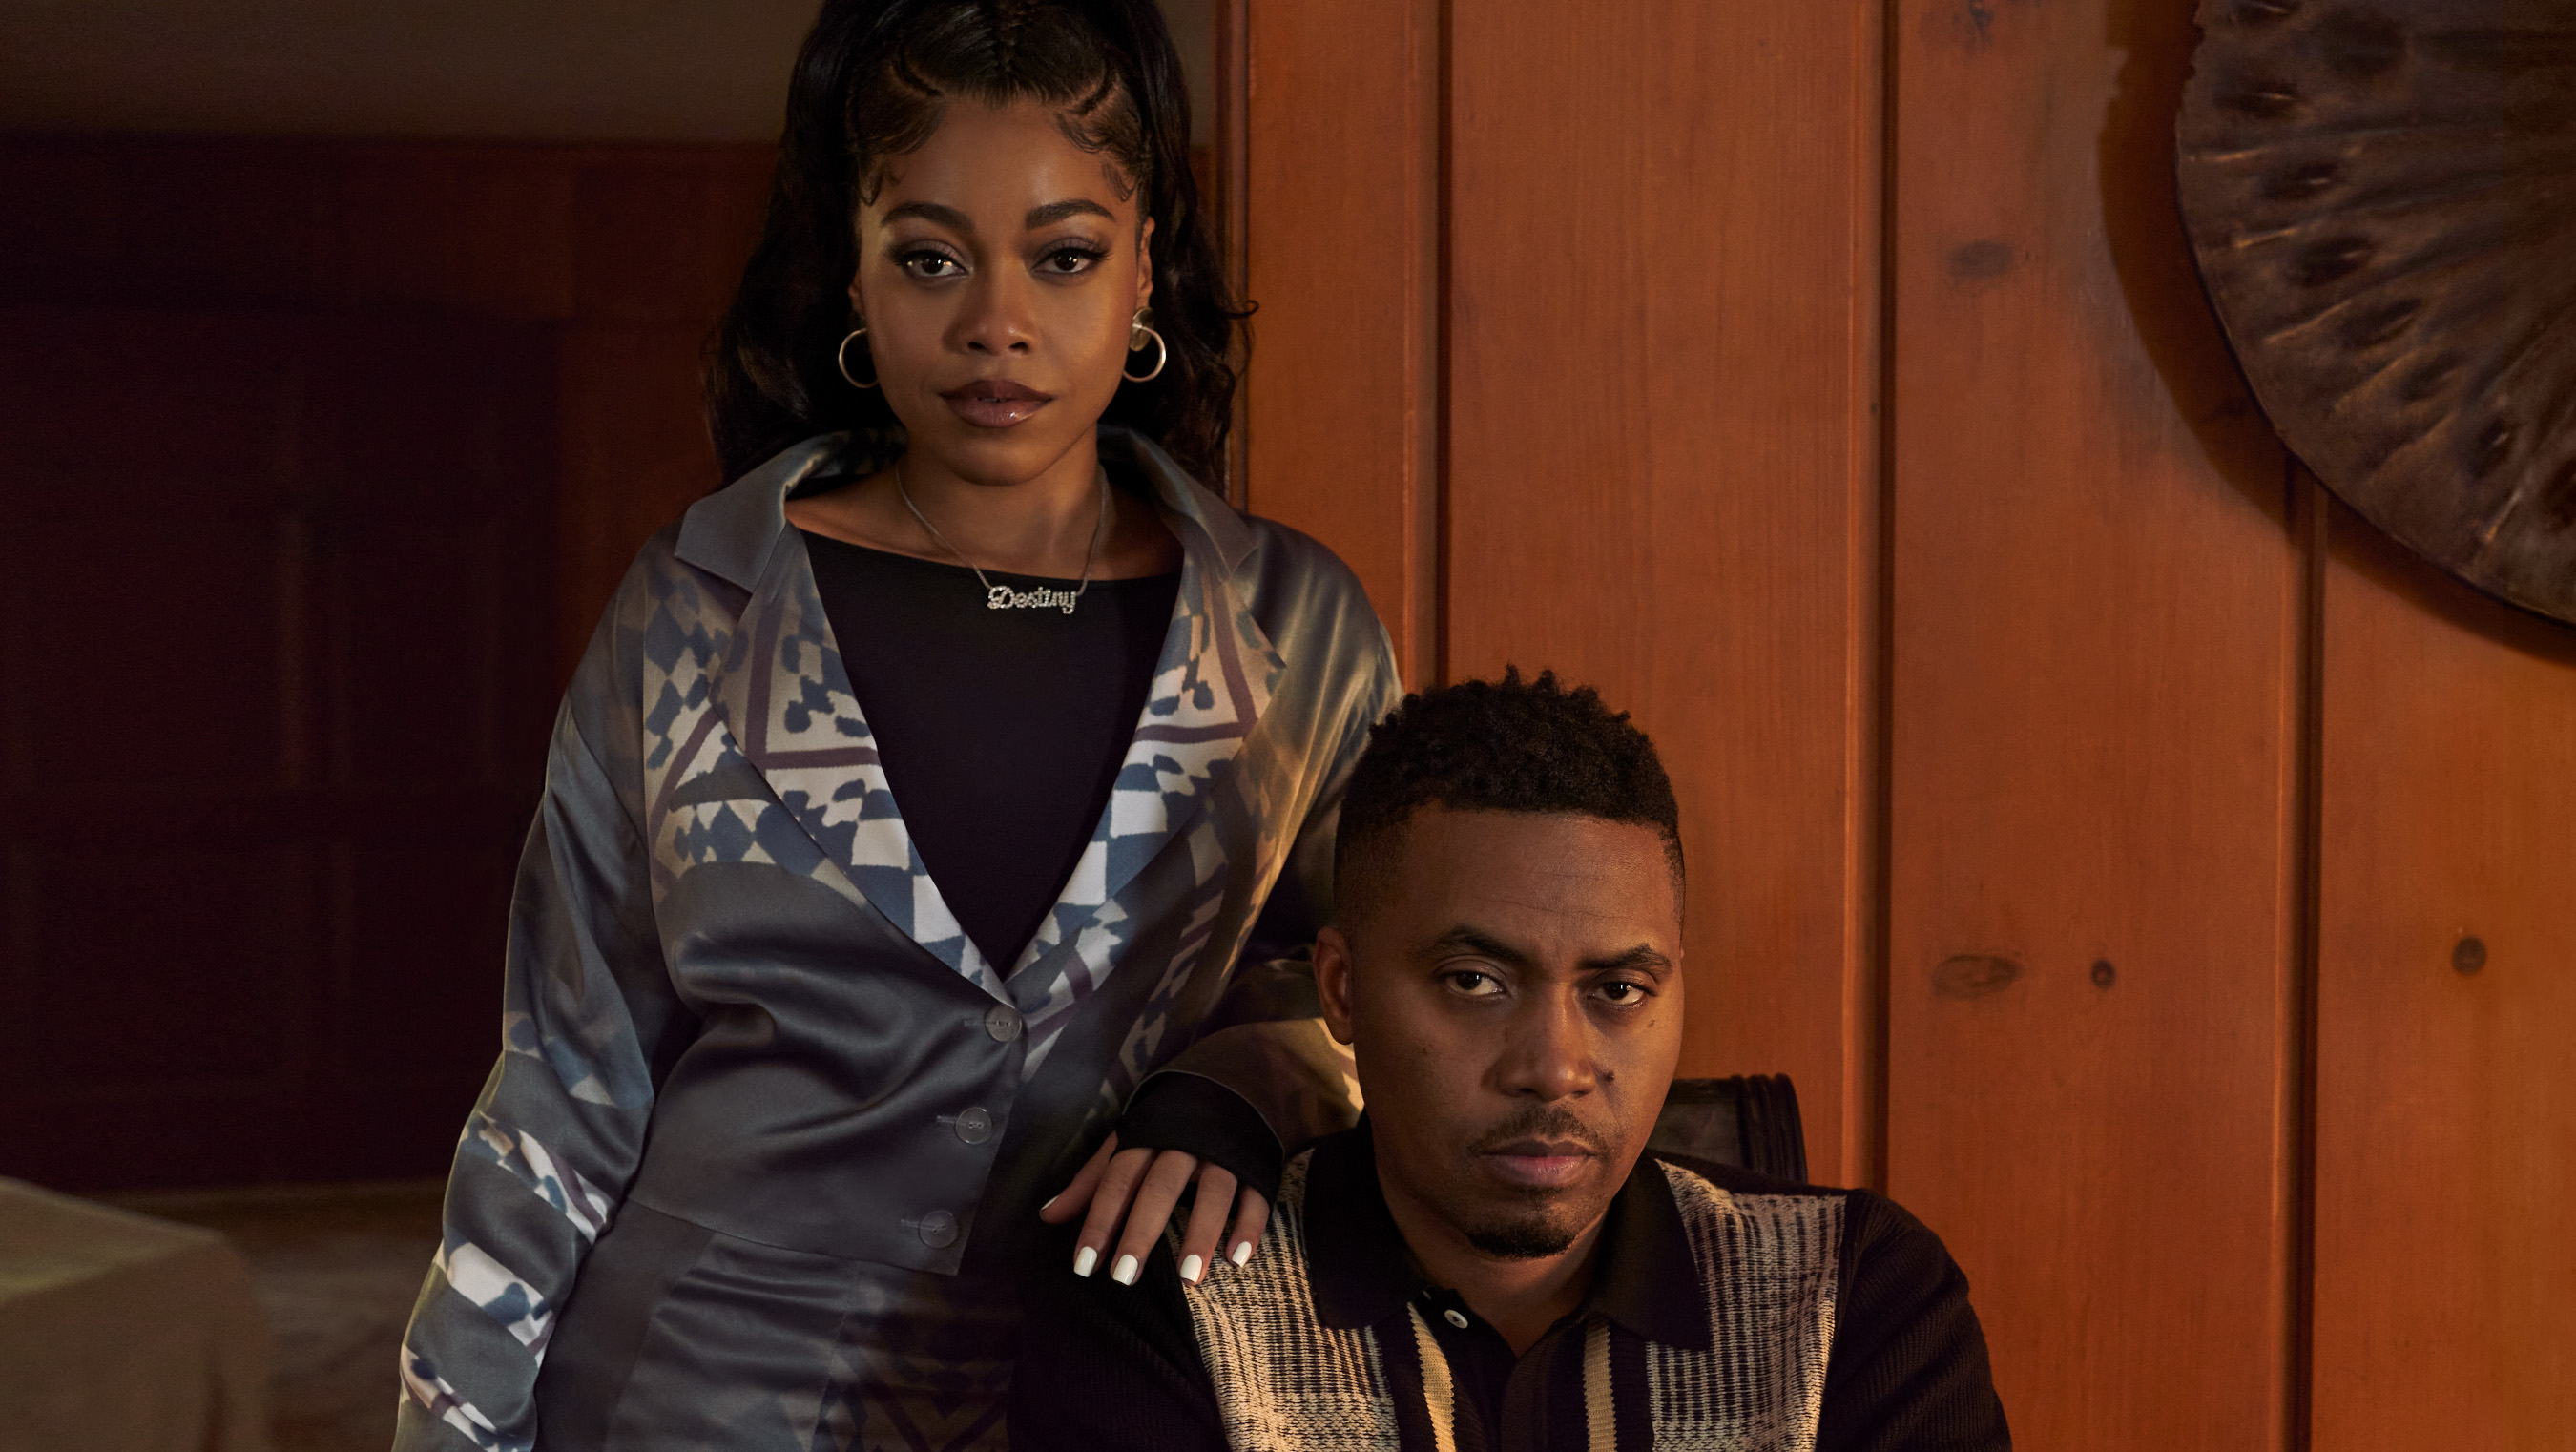 Developed by UNINTERRUPTED, the film recites a letter from Nas to his daughter Destiny, illuminating a generational legacy to thrive, build, rise and innovate no matter the obstacle.